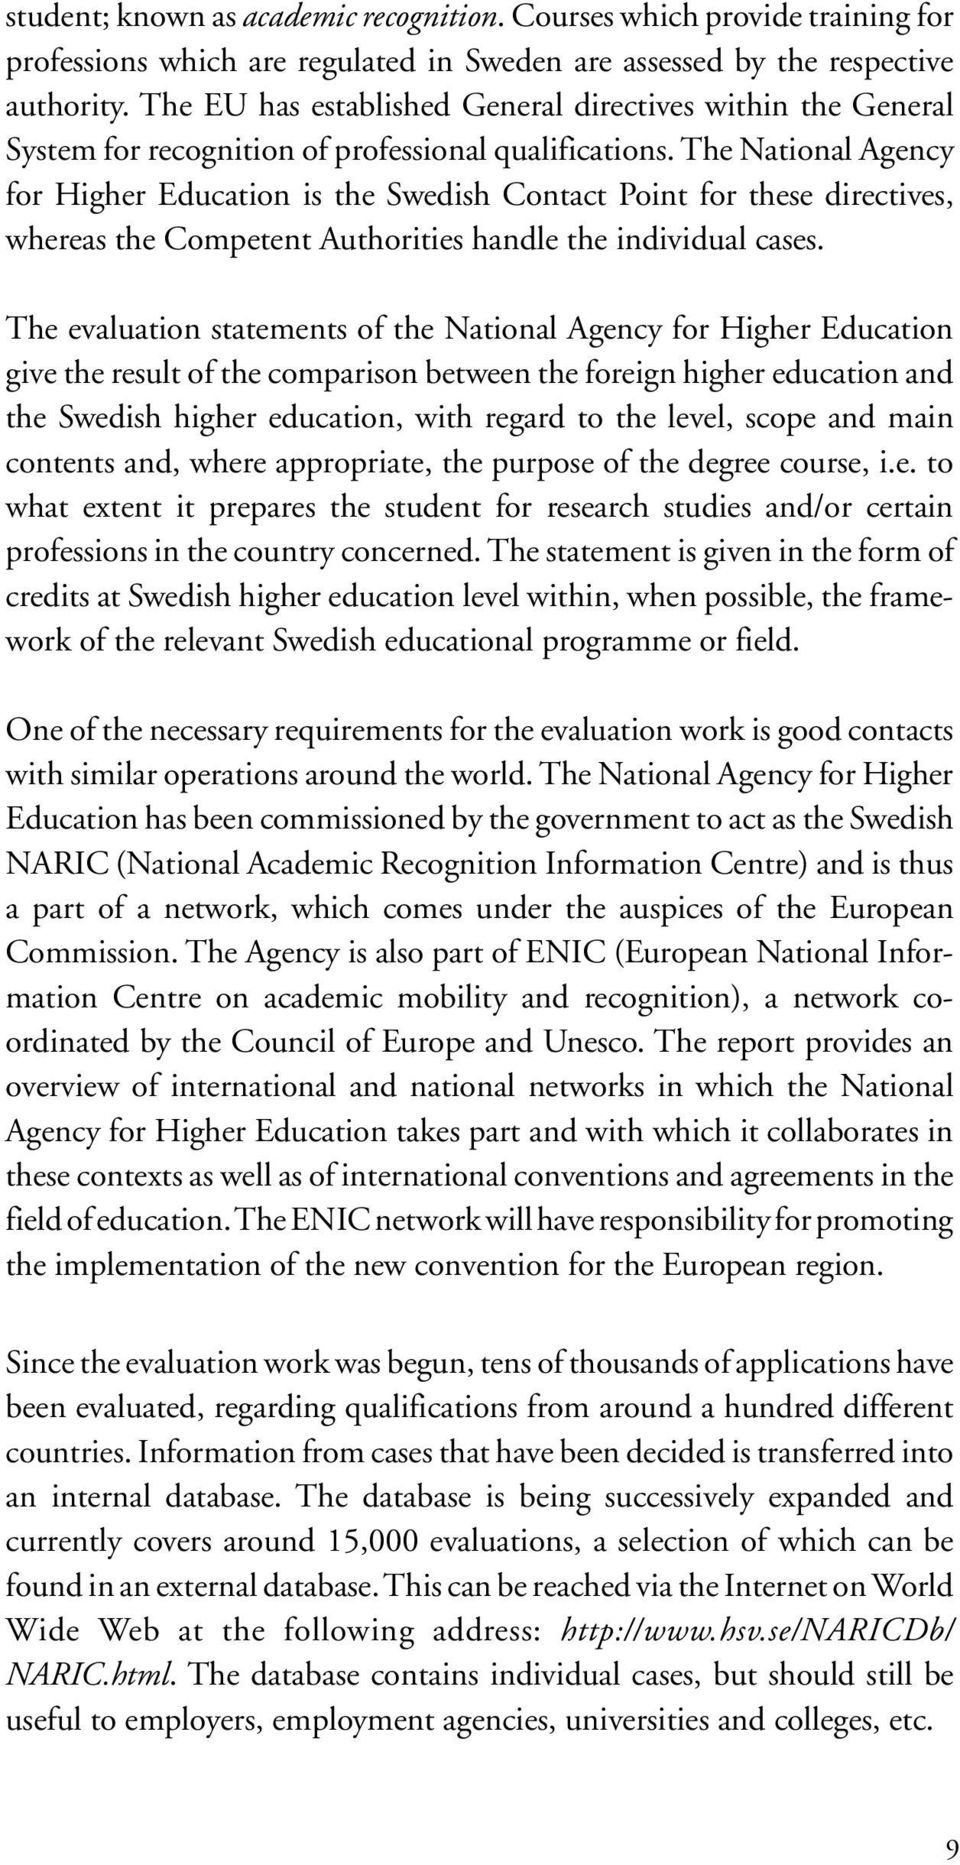 The National Agency for Higher Education is the Swedish Contact Point for these directives, whereas the Competent Authorities handle the individual cases.